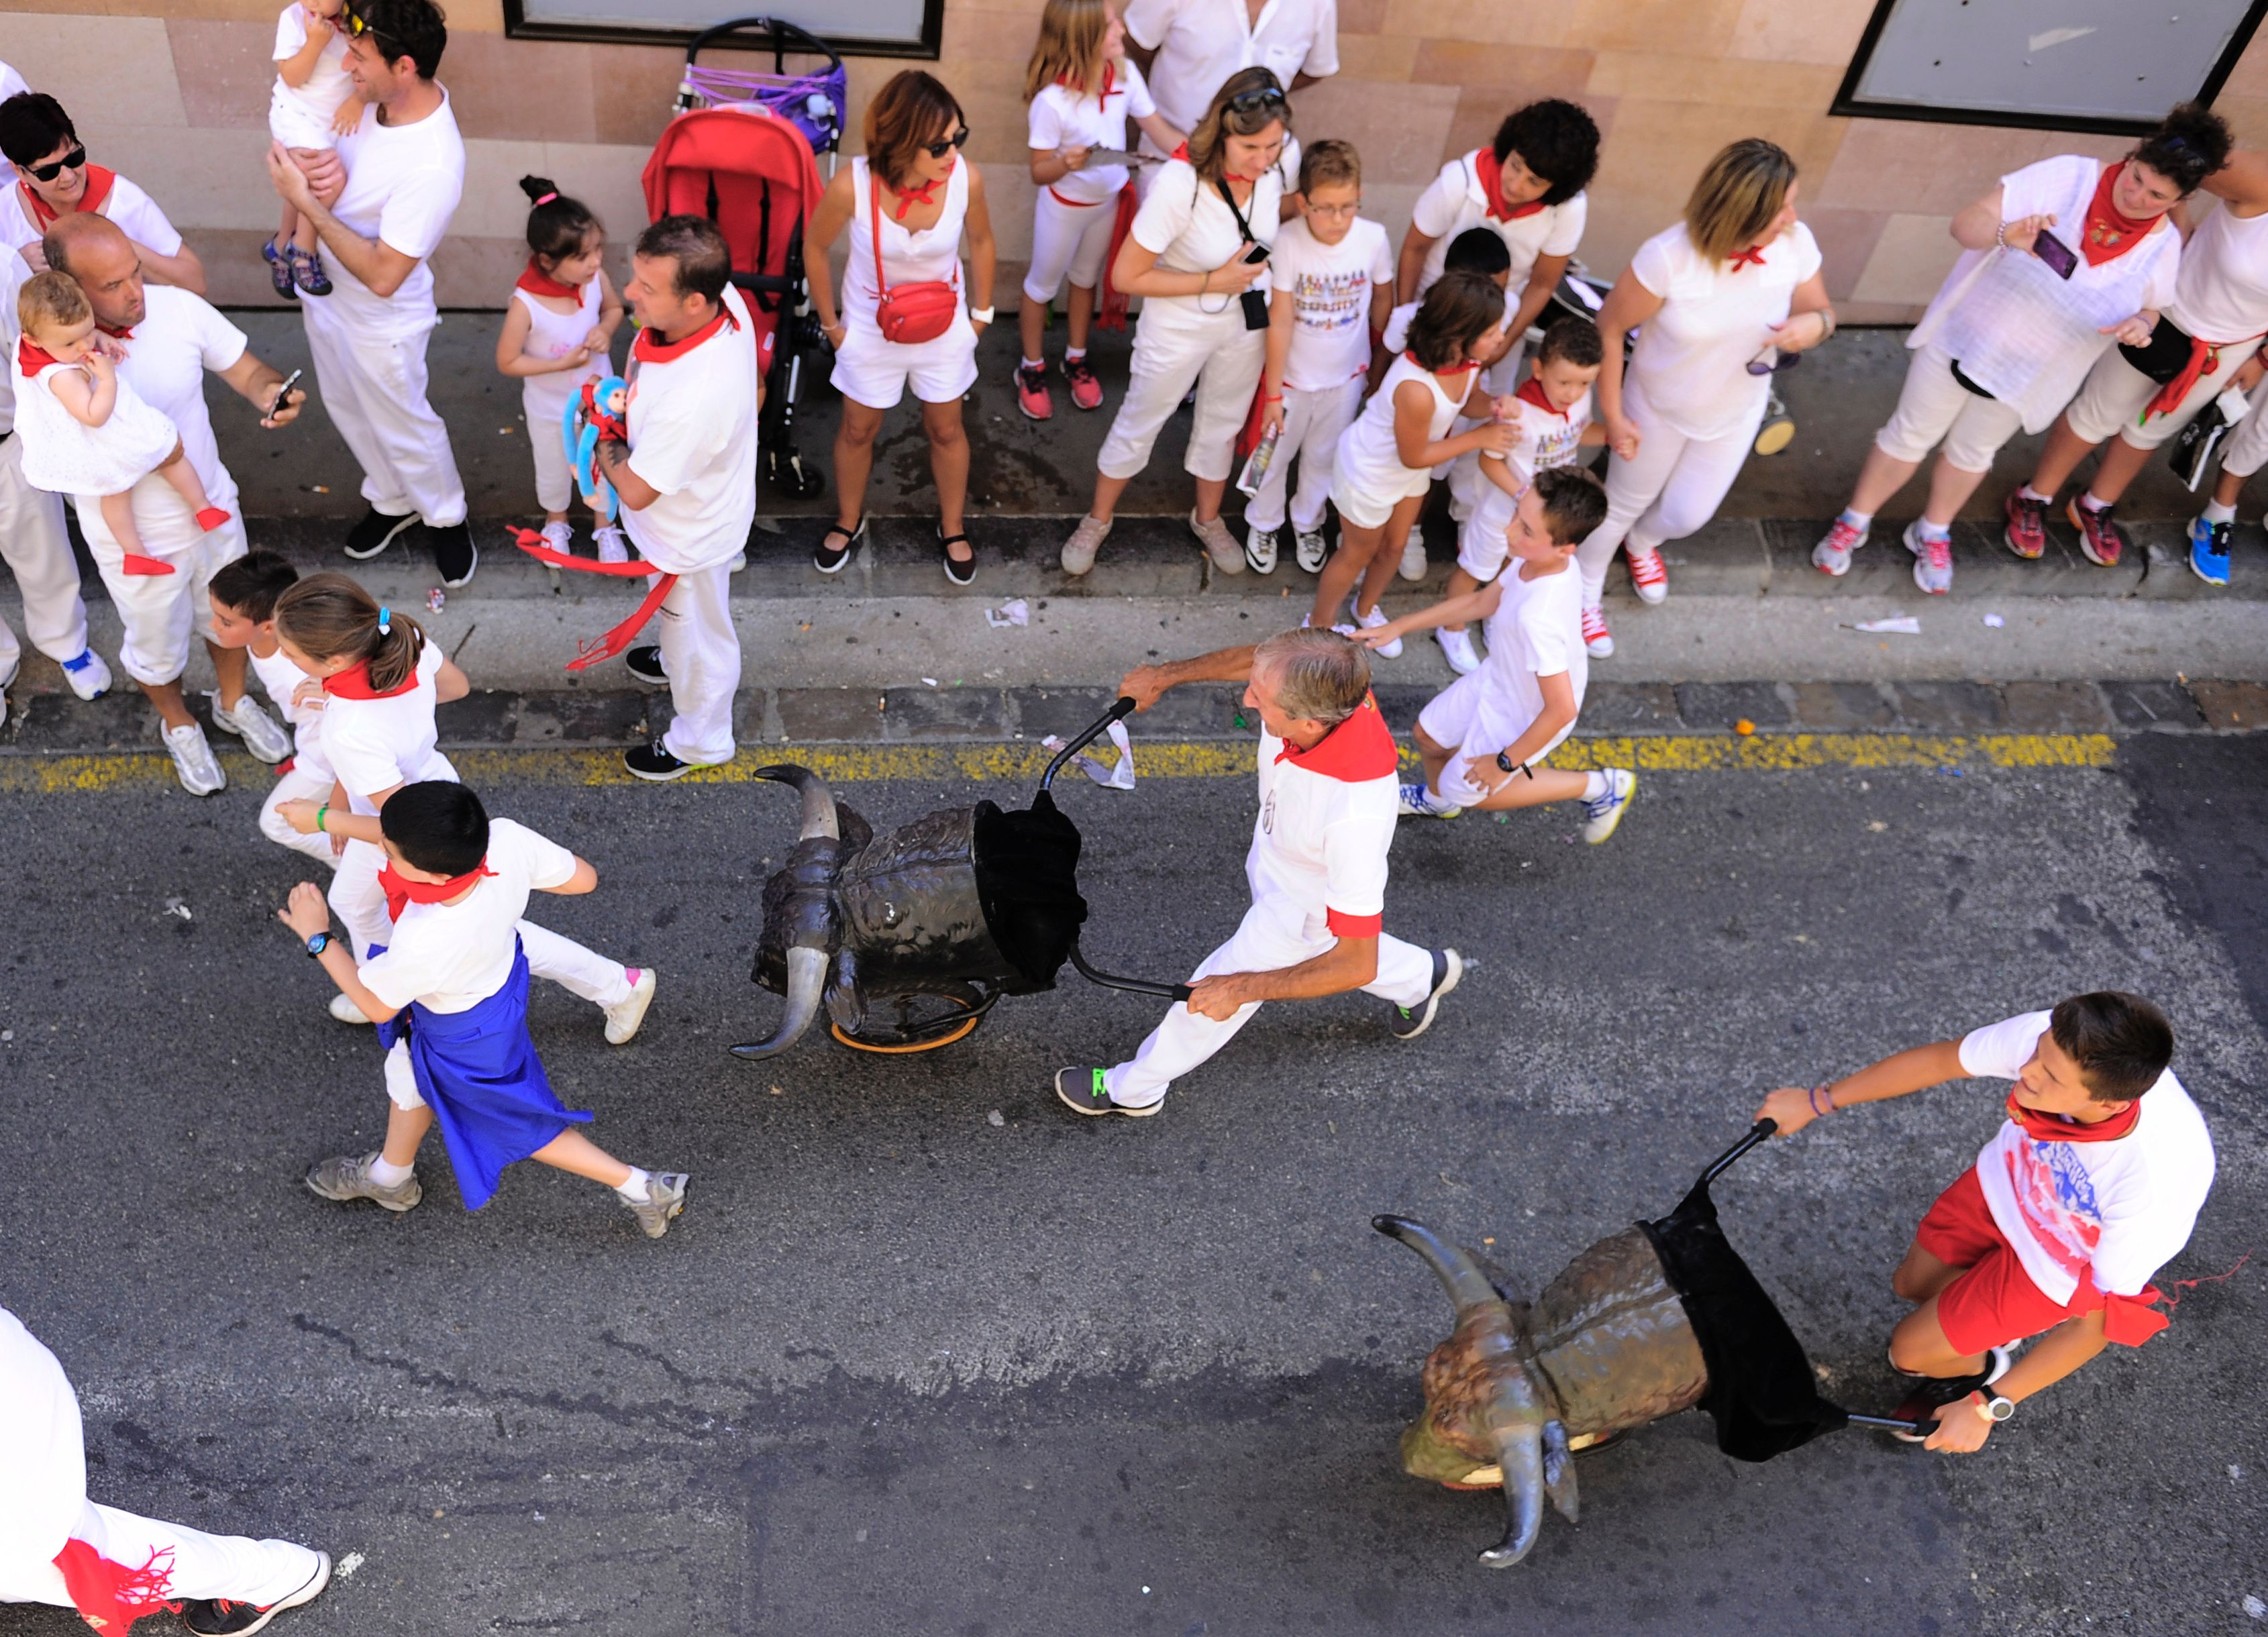 Stierenrennen in Pamplona